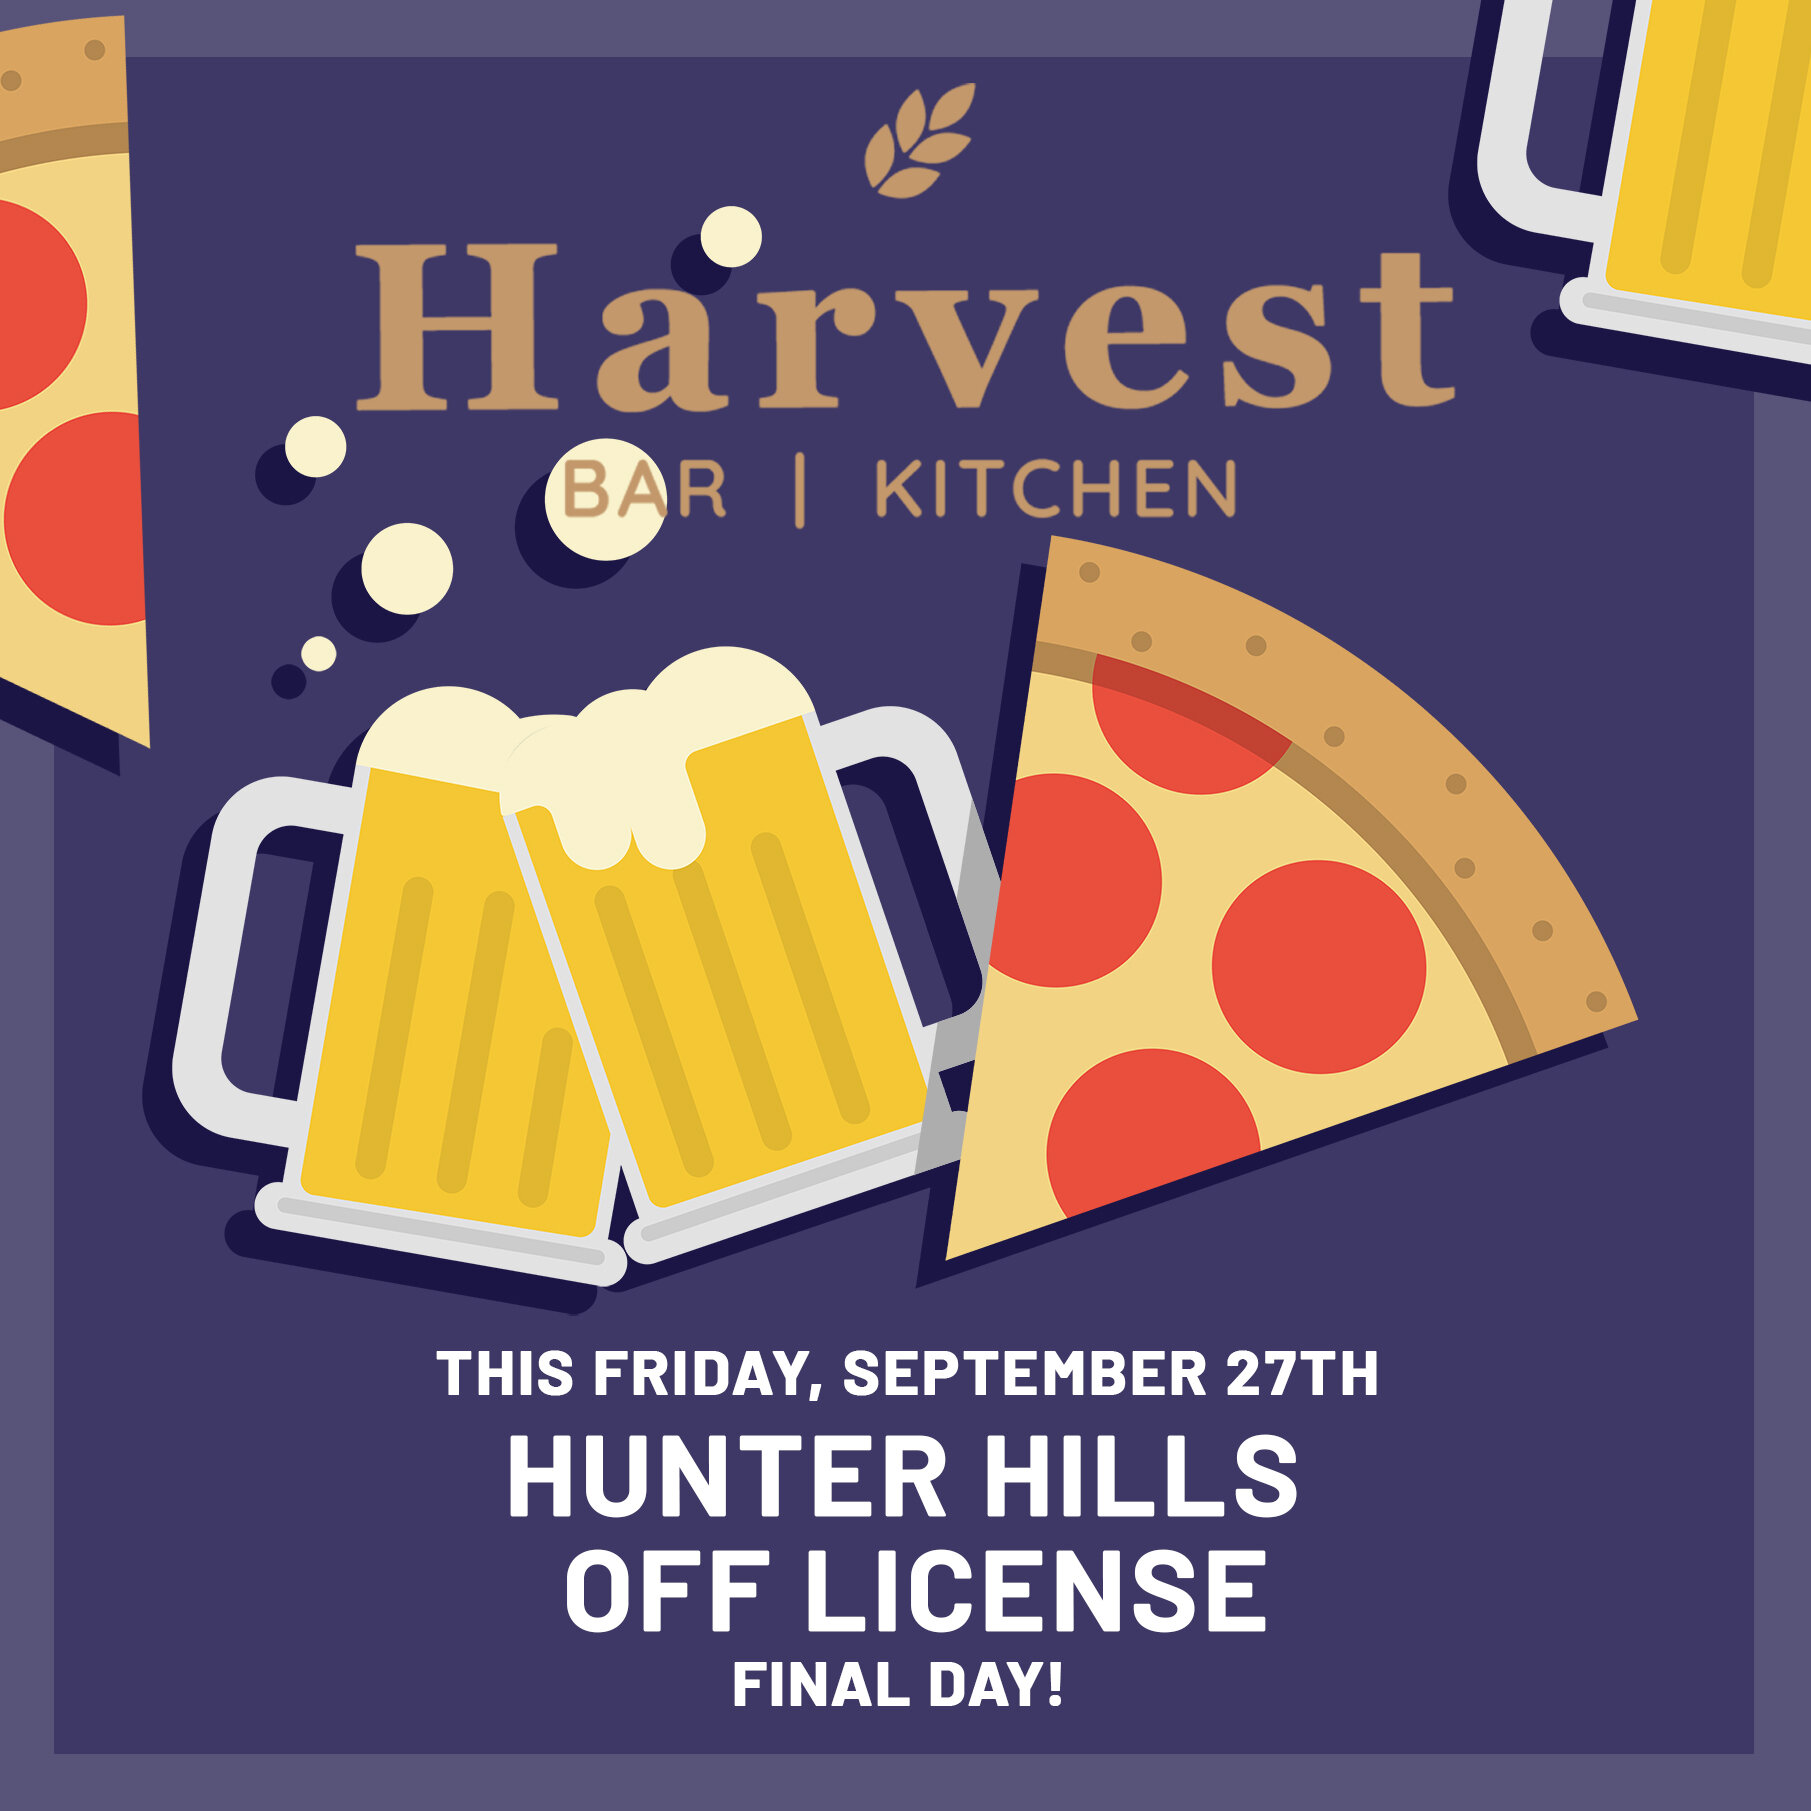 This Friday -  It's the last day of the Hunter Hills off-licence this Friday, so we decided to make Friday a pizza and beer evening. Head on up and bring your riggers for one last fill, plus a catch up with the Hunter Hills brewers.  Don't worry the on-licence beer will still be flowing!!!  After that you'll have to head down to Superliquor for your home requirements.  We're running just the pizza and bar snacks menu for the evening, with Chicken, Meatlovers, Hawaiian, and Vegetarian flavours on offer.